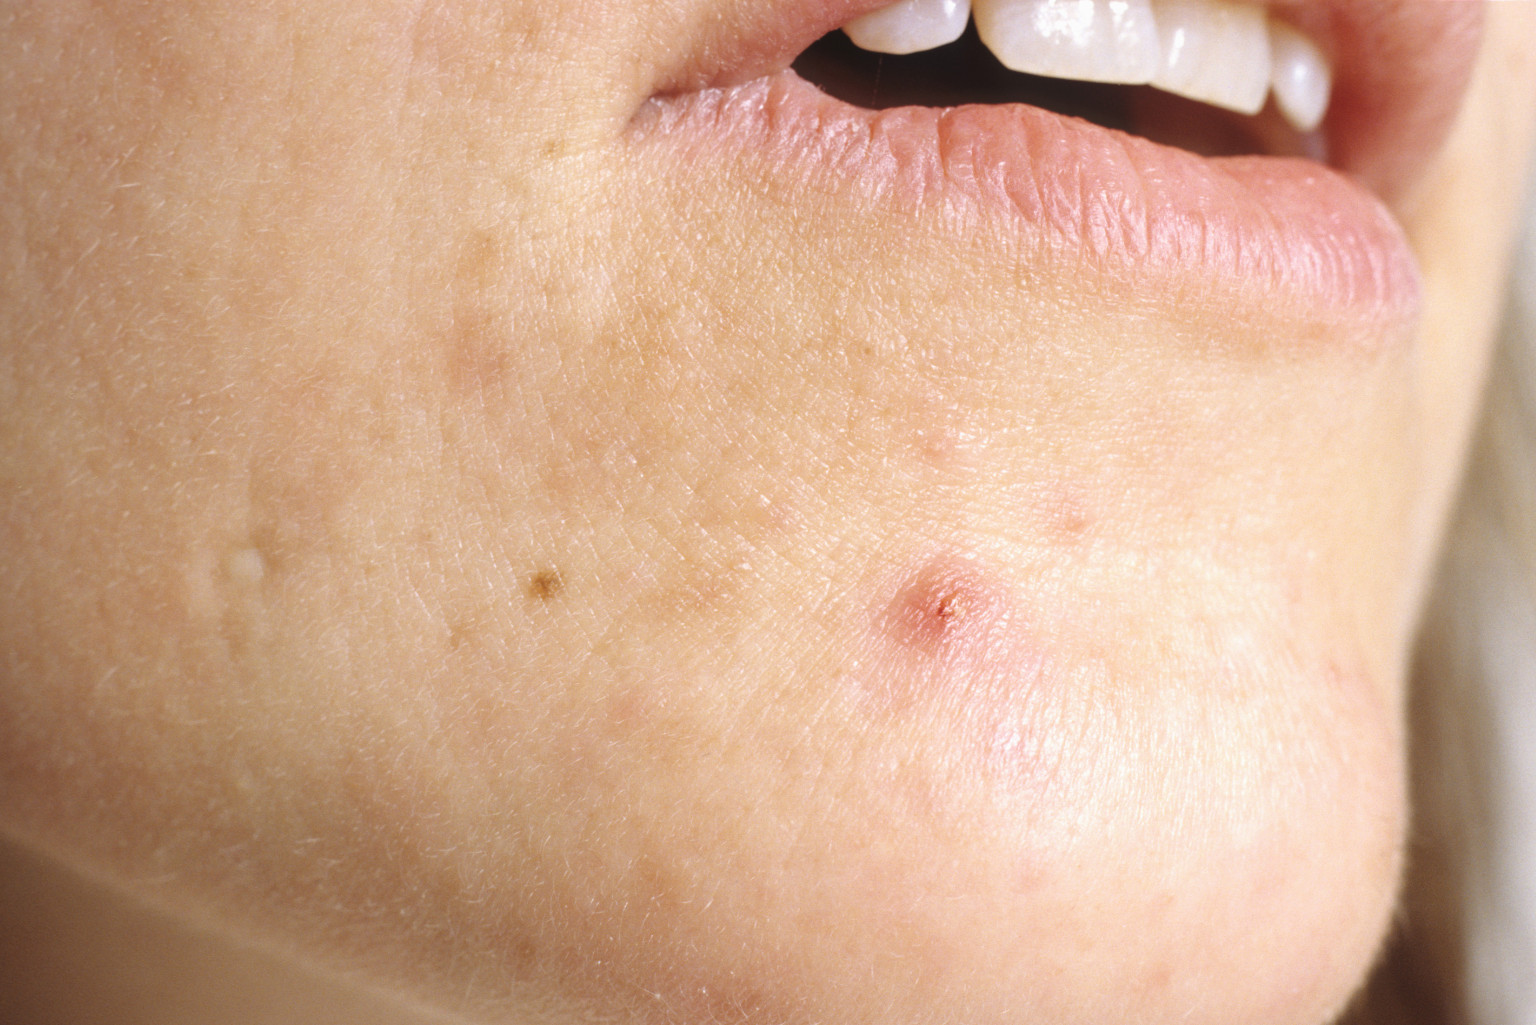 CHRONIC INFLAMMATION OF THE SKIN AFFECTING THE HAIR FOLLICLE. PROPIONIBACTERIUM ACNE BREAKS DOWN OILS AND IS ASSOCIATED WITH IT. ANTIBIOTICS HAVE PROVED EFFECTIVE. ACNE IS OFTEN COMPLICATED BY SECONDARY STAPHYLOCOCCUS INFECTIONS. CLOSE UP WOMANS CHIN SHOWING ACNE